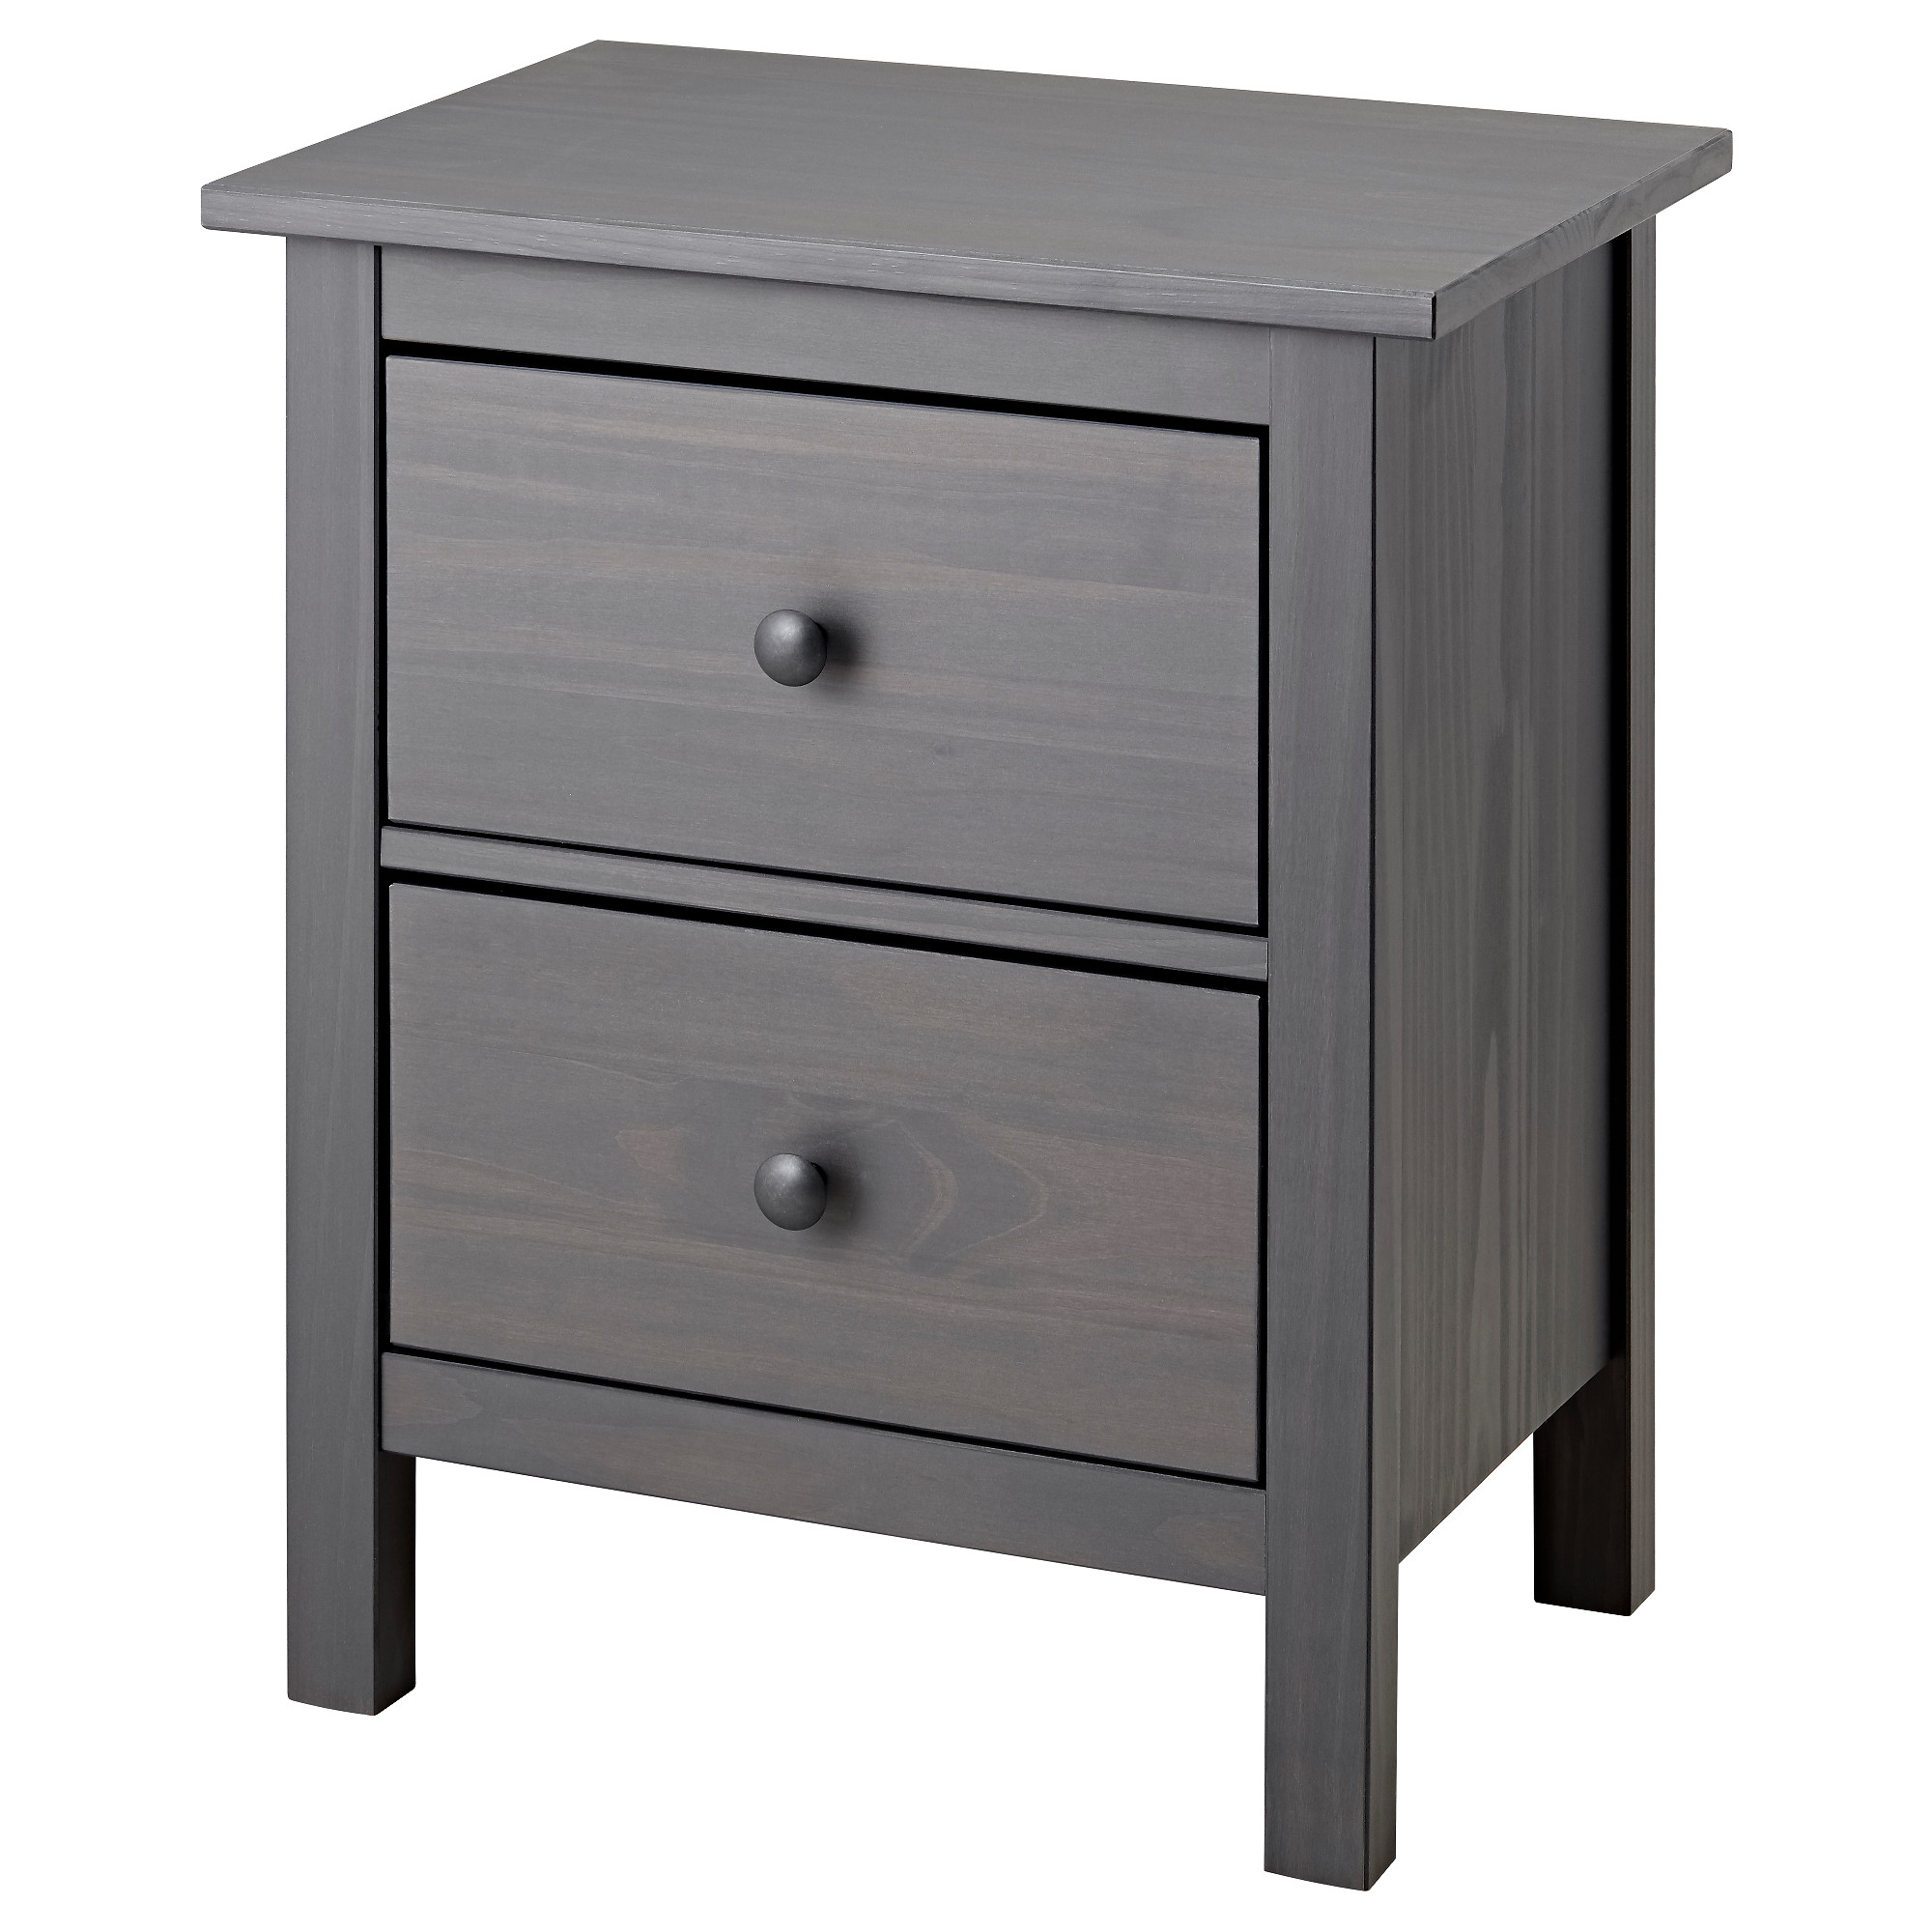 purchase cheap fc097 87db0 2-drawer chest HEMNES gray dark gray stained